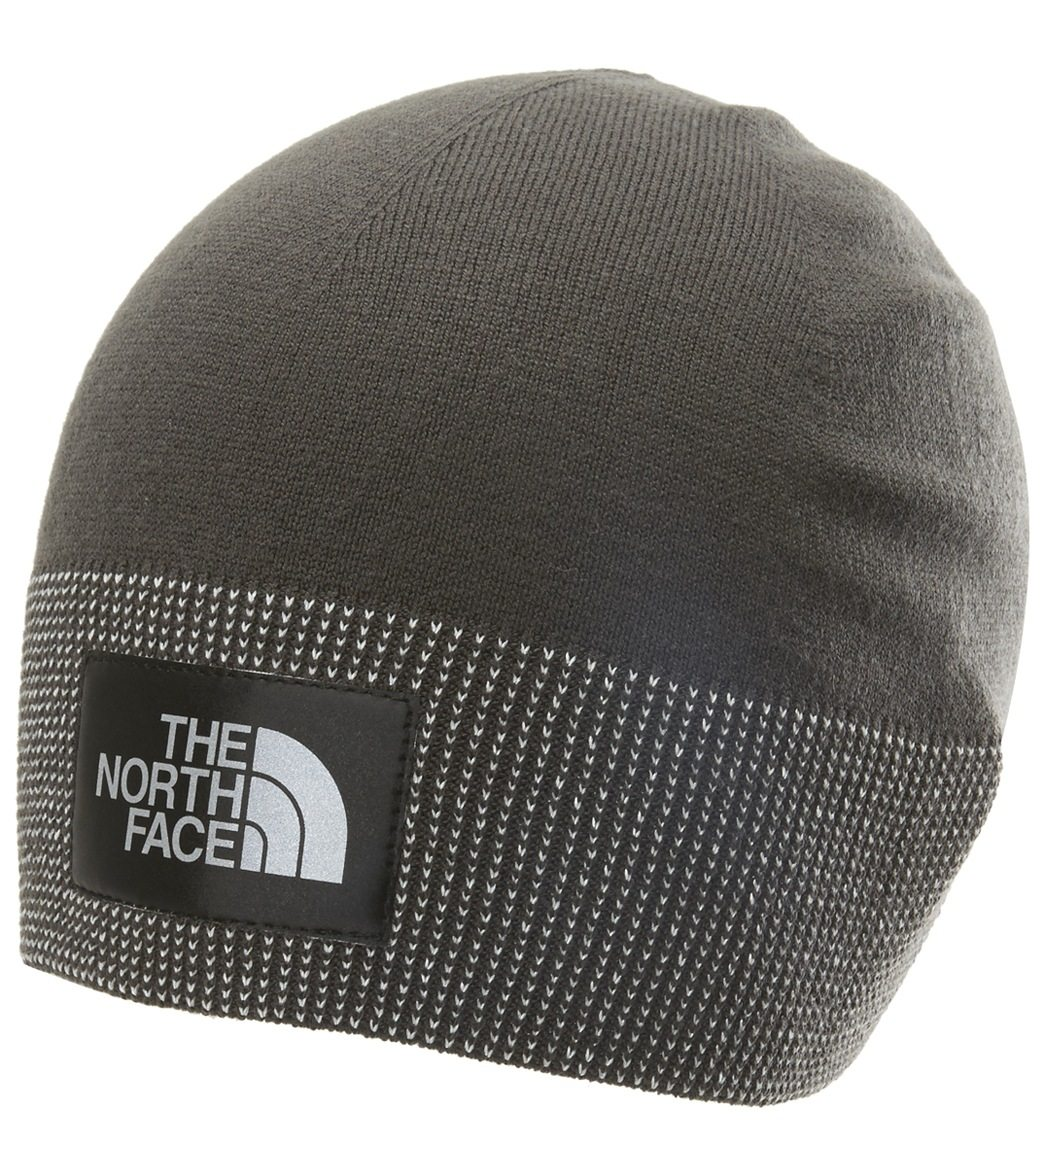 9bf5a7f91c0 The North Face Nite Flare Beanie at SwimOutlet.com